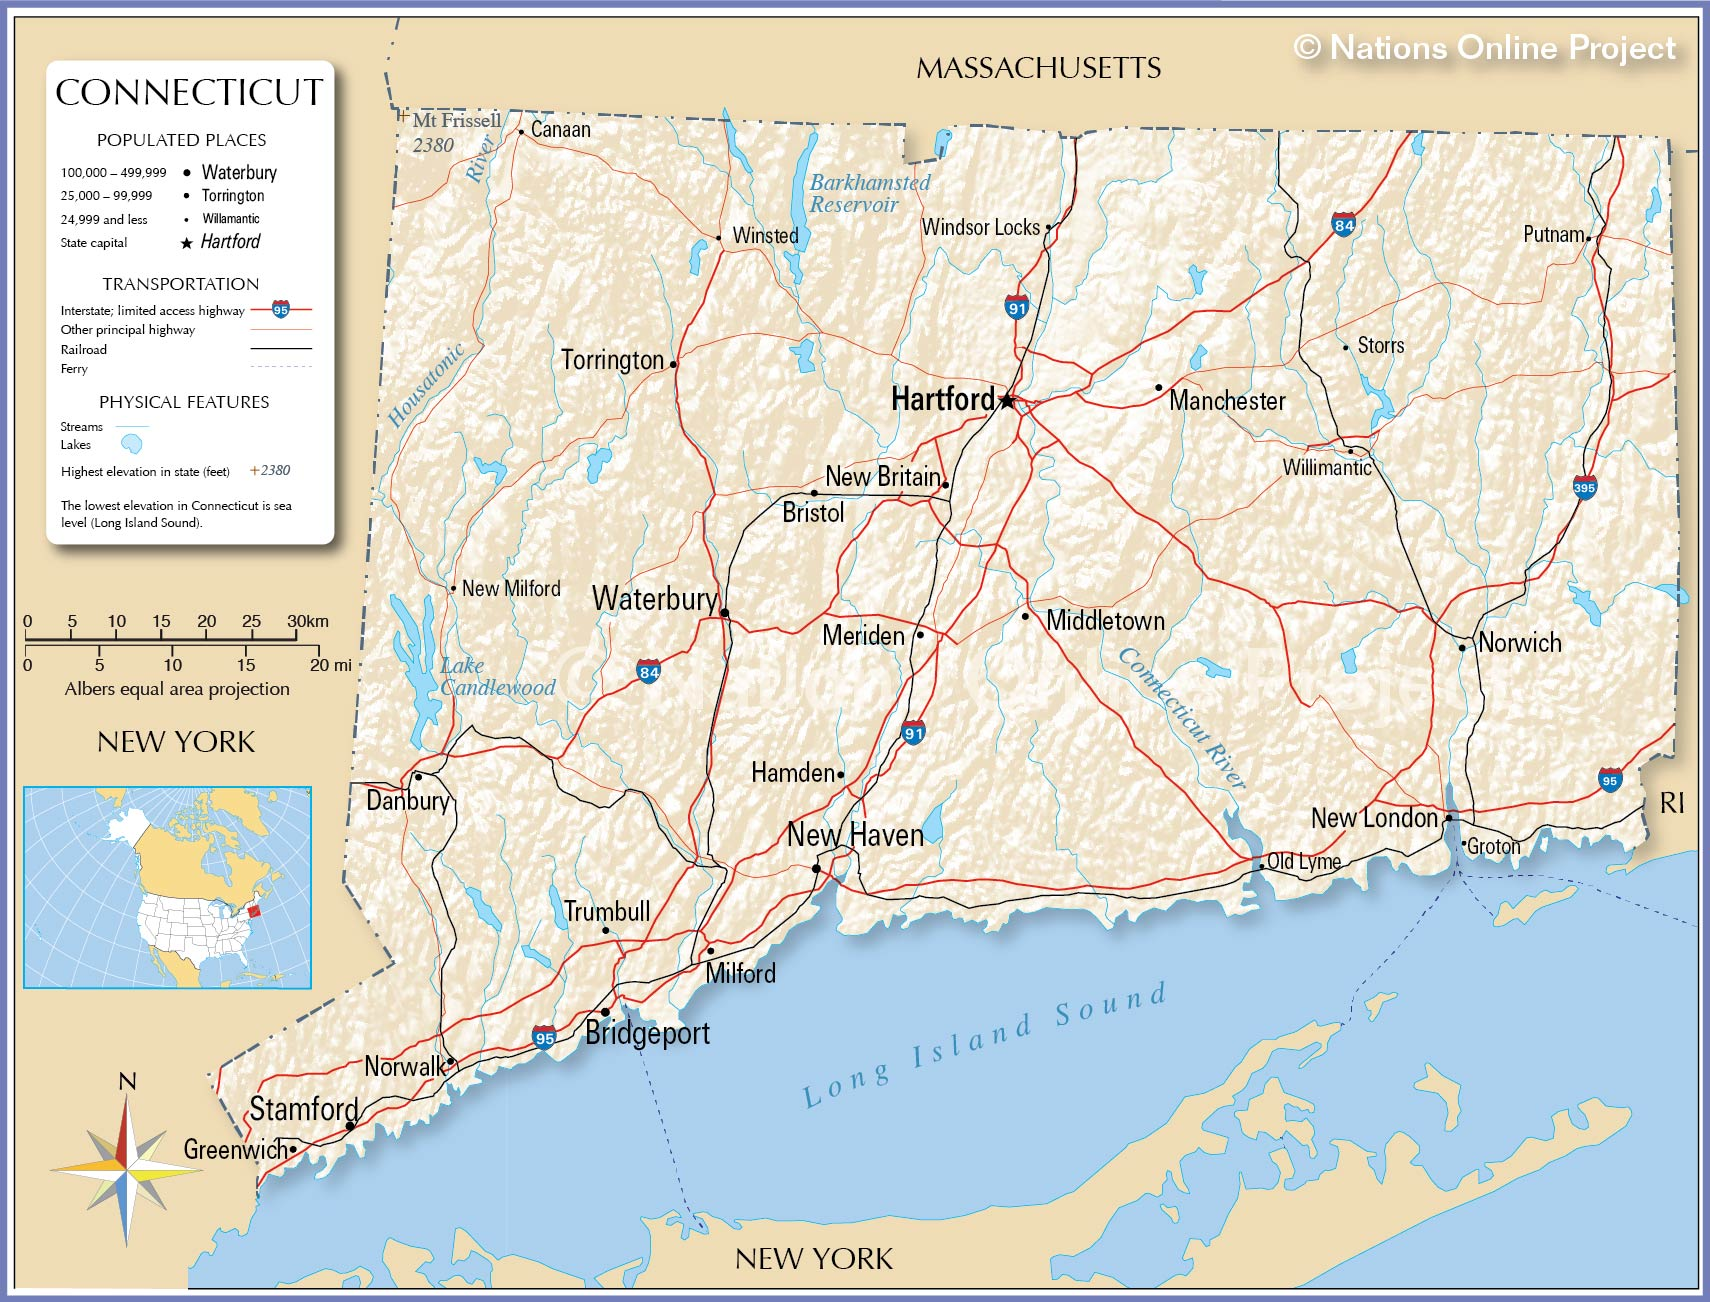 Maps United States Map Connecticut - Staes on us map connecticut